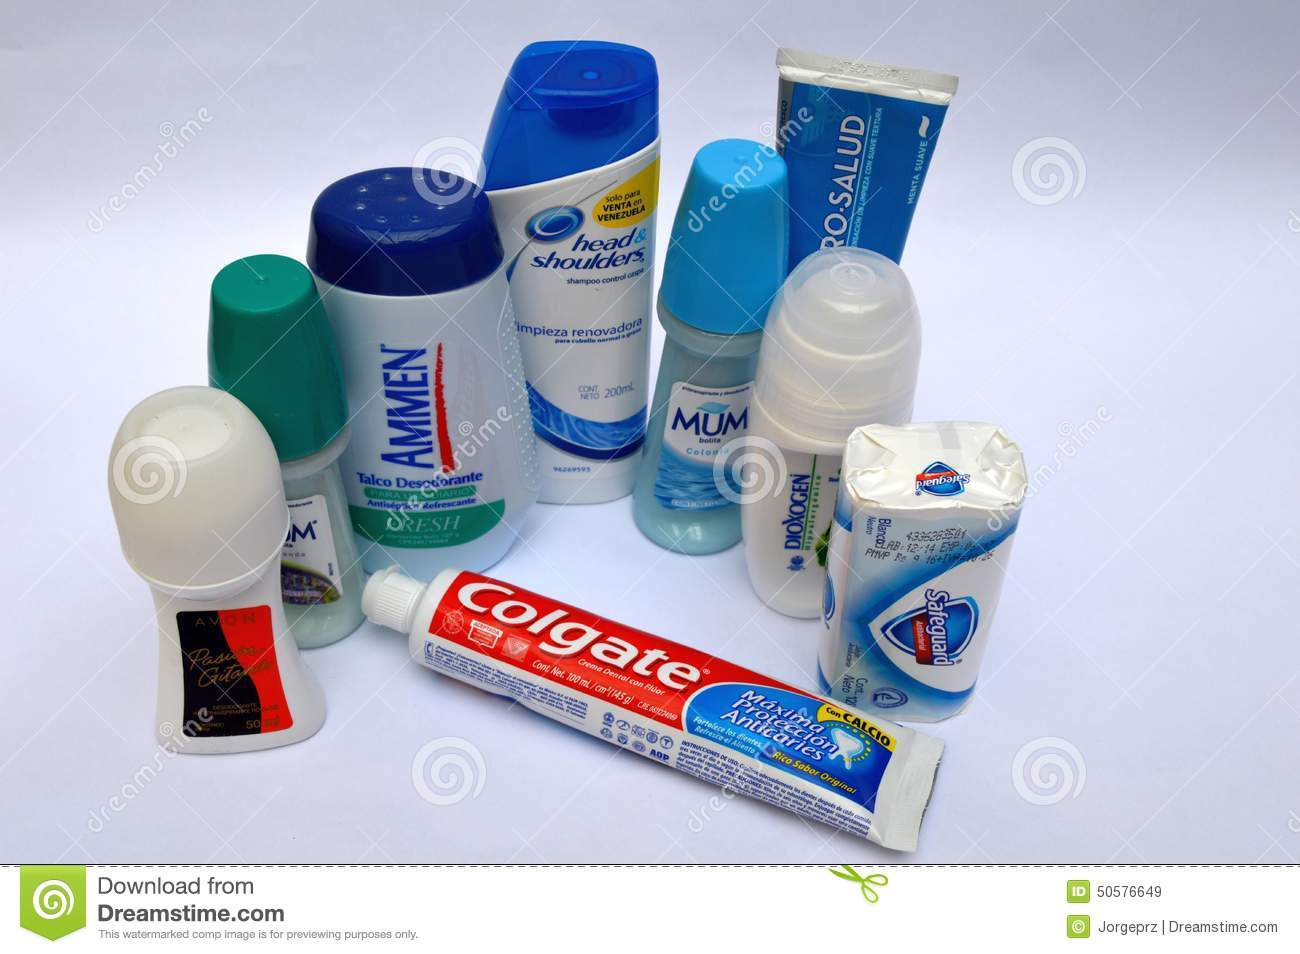 Hygiene and personal care products